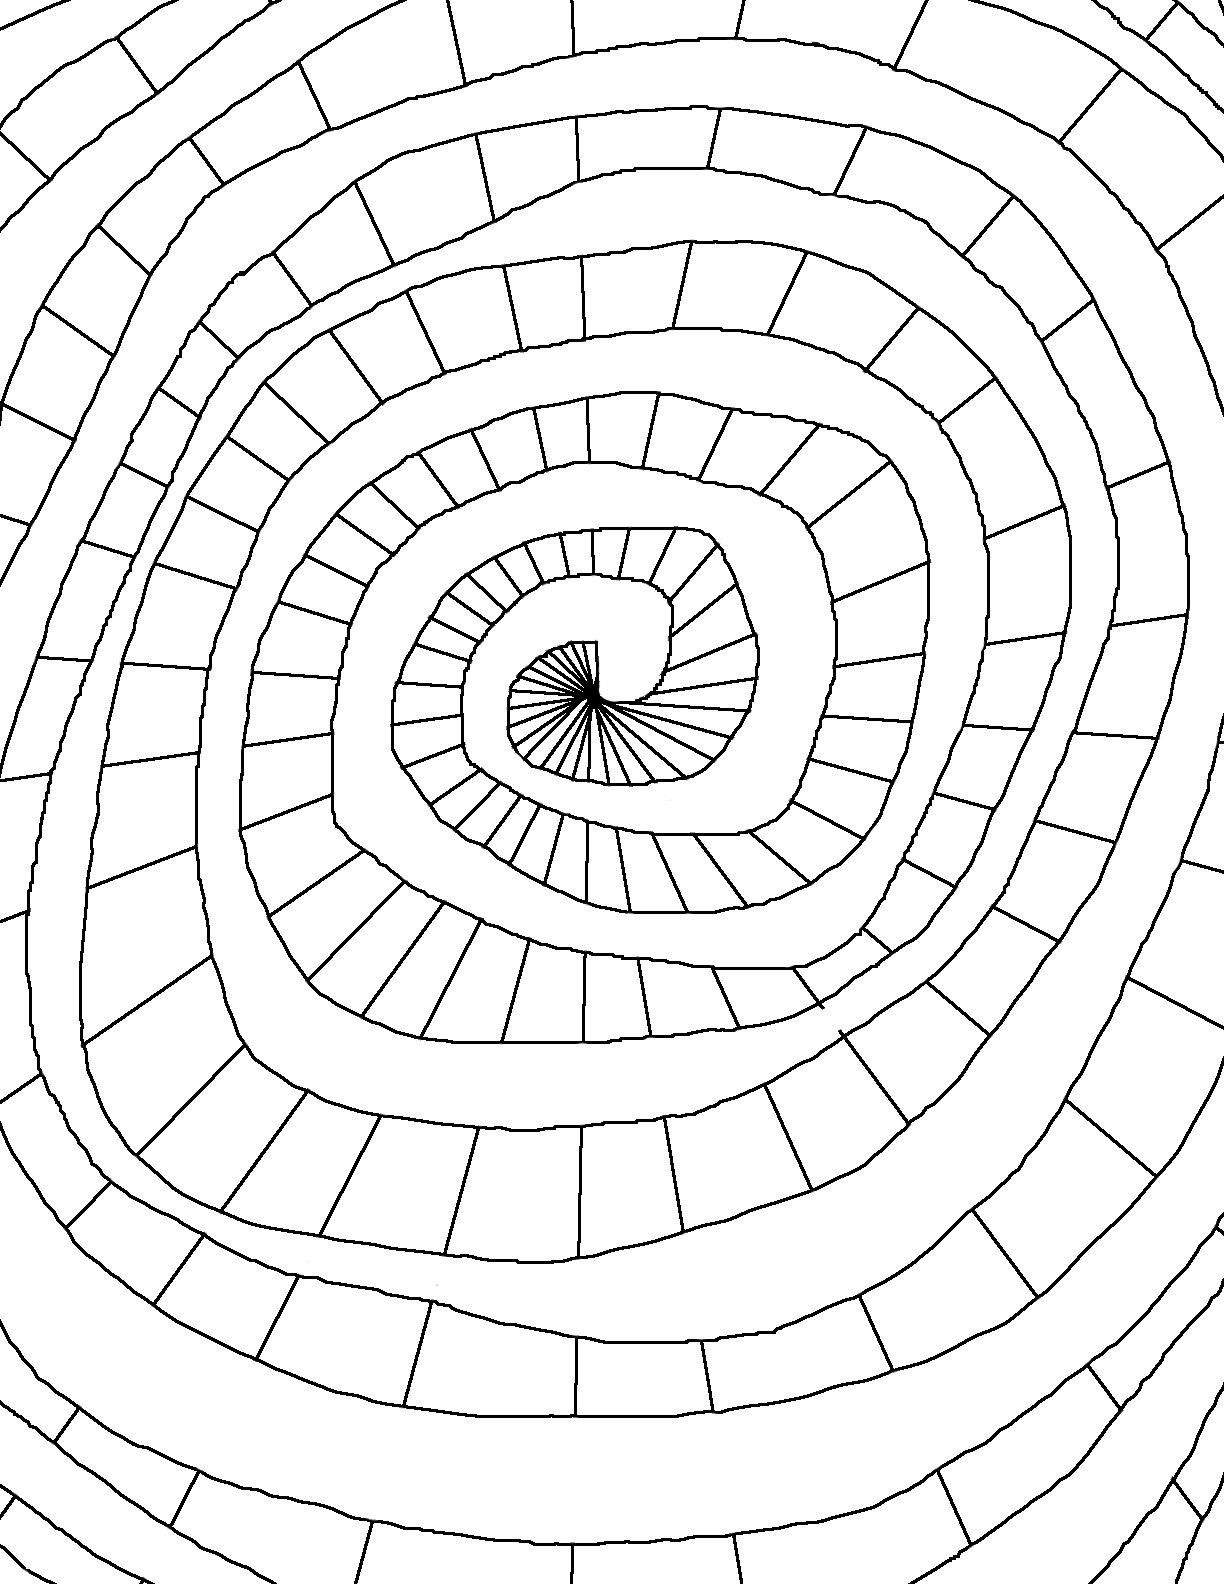 Coloring Page World Color Spiral Shape Coloring Pages Coloring